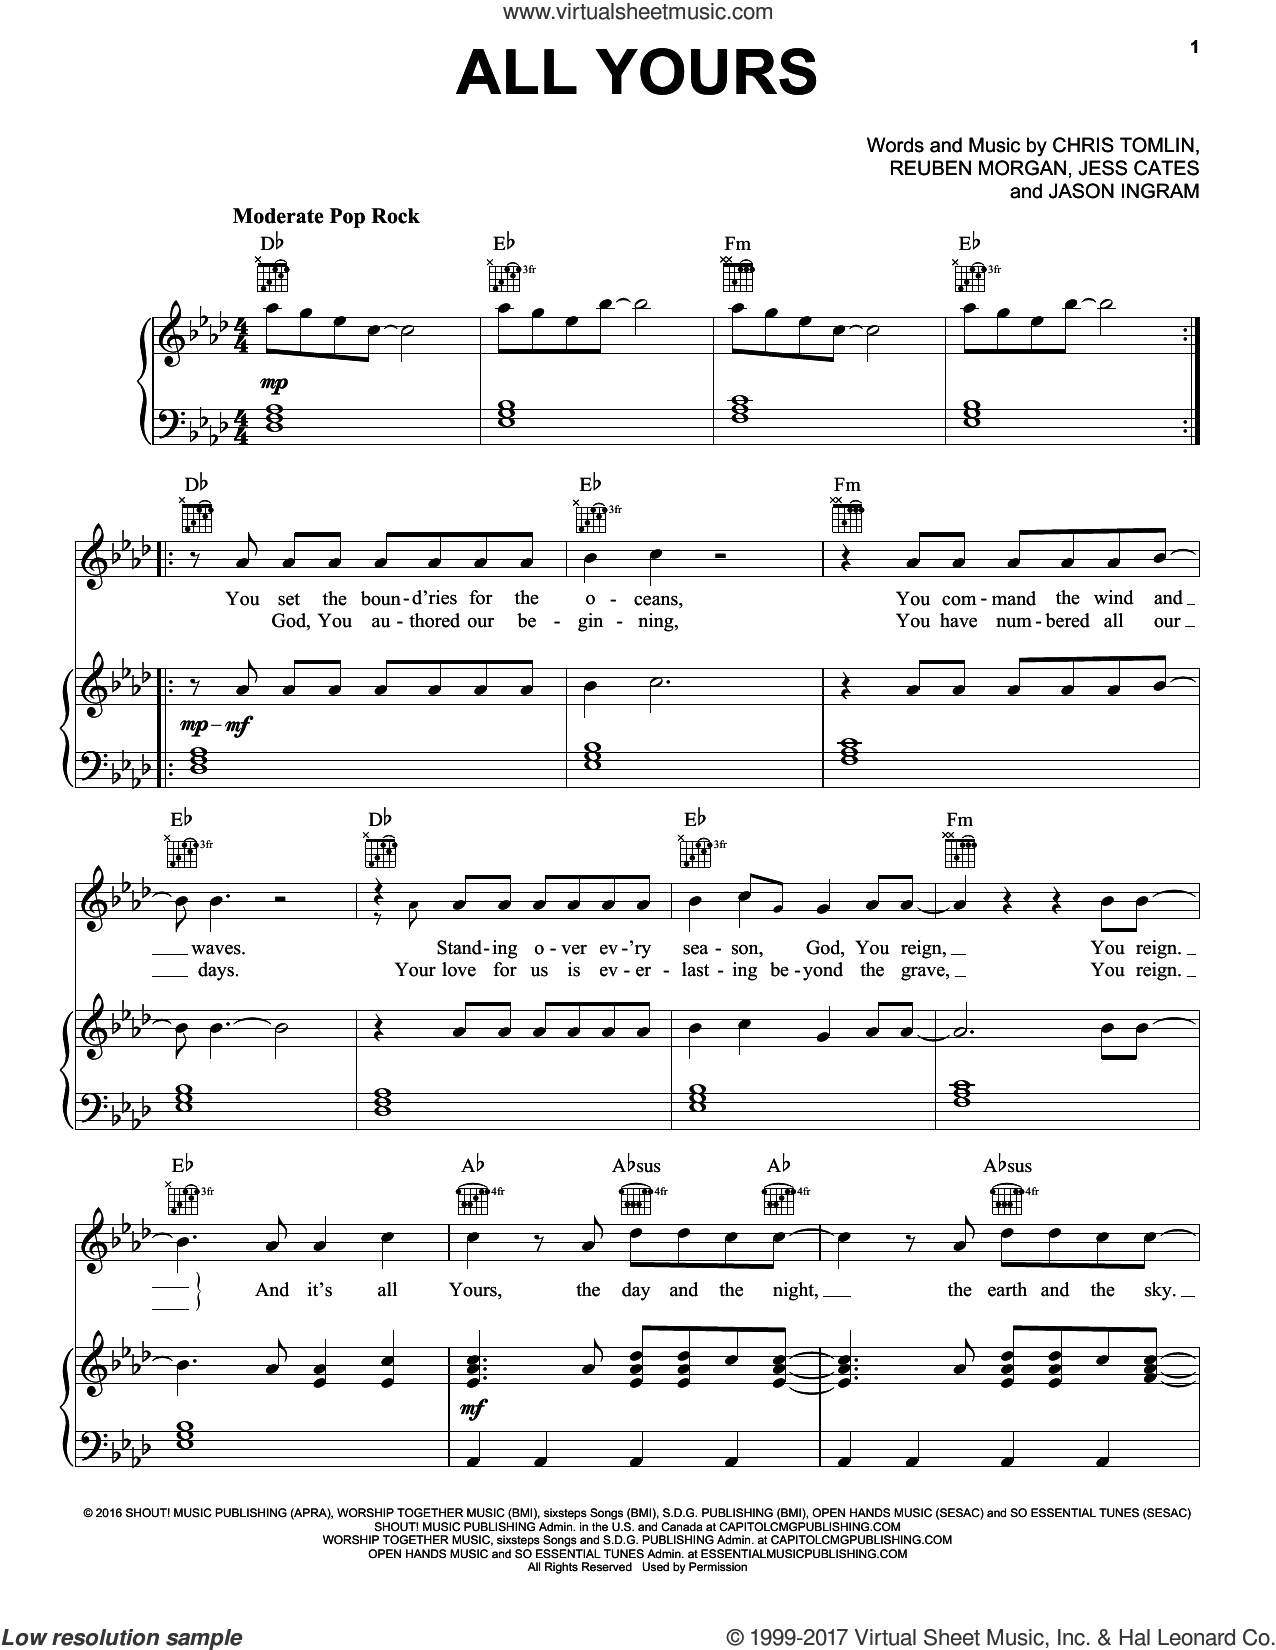 All Yours sheet music for voice, piano or guitar by Chris Tomlin, Jason Ingram, Jess Cates and Reuben Morgan, intermediate skill level